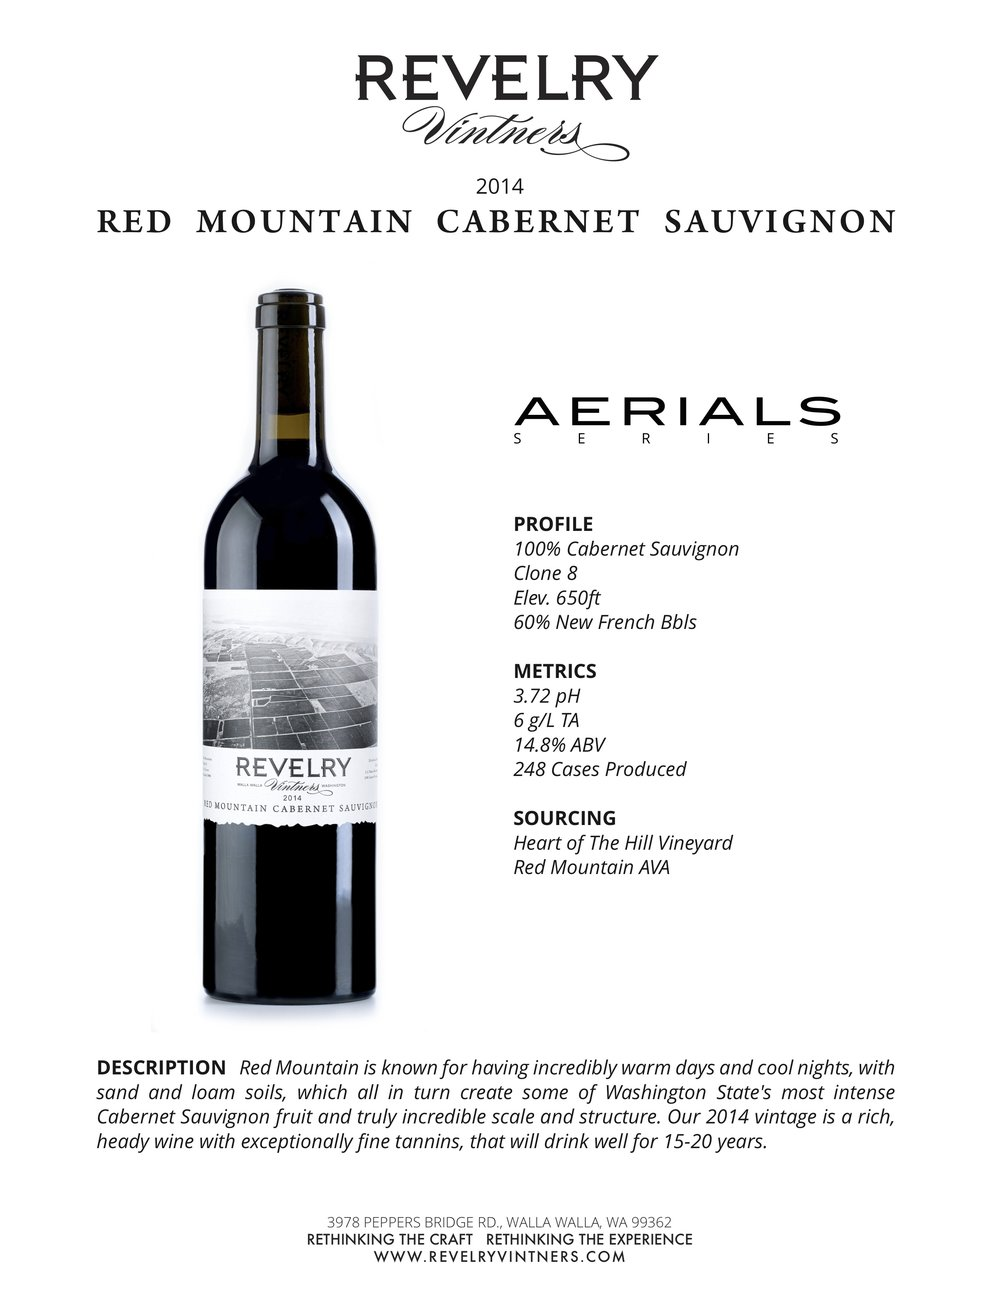 2014 RED MOUNTAIN CABERNET SAUVIGNON